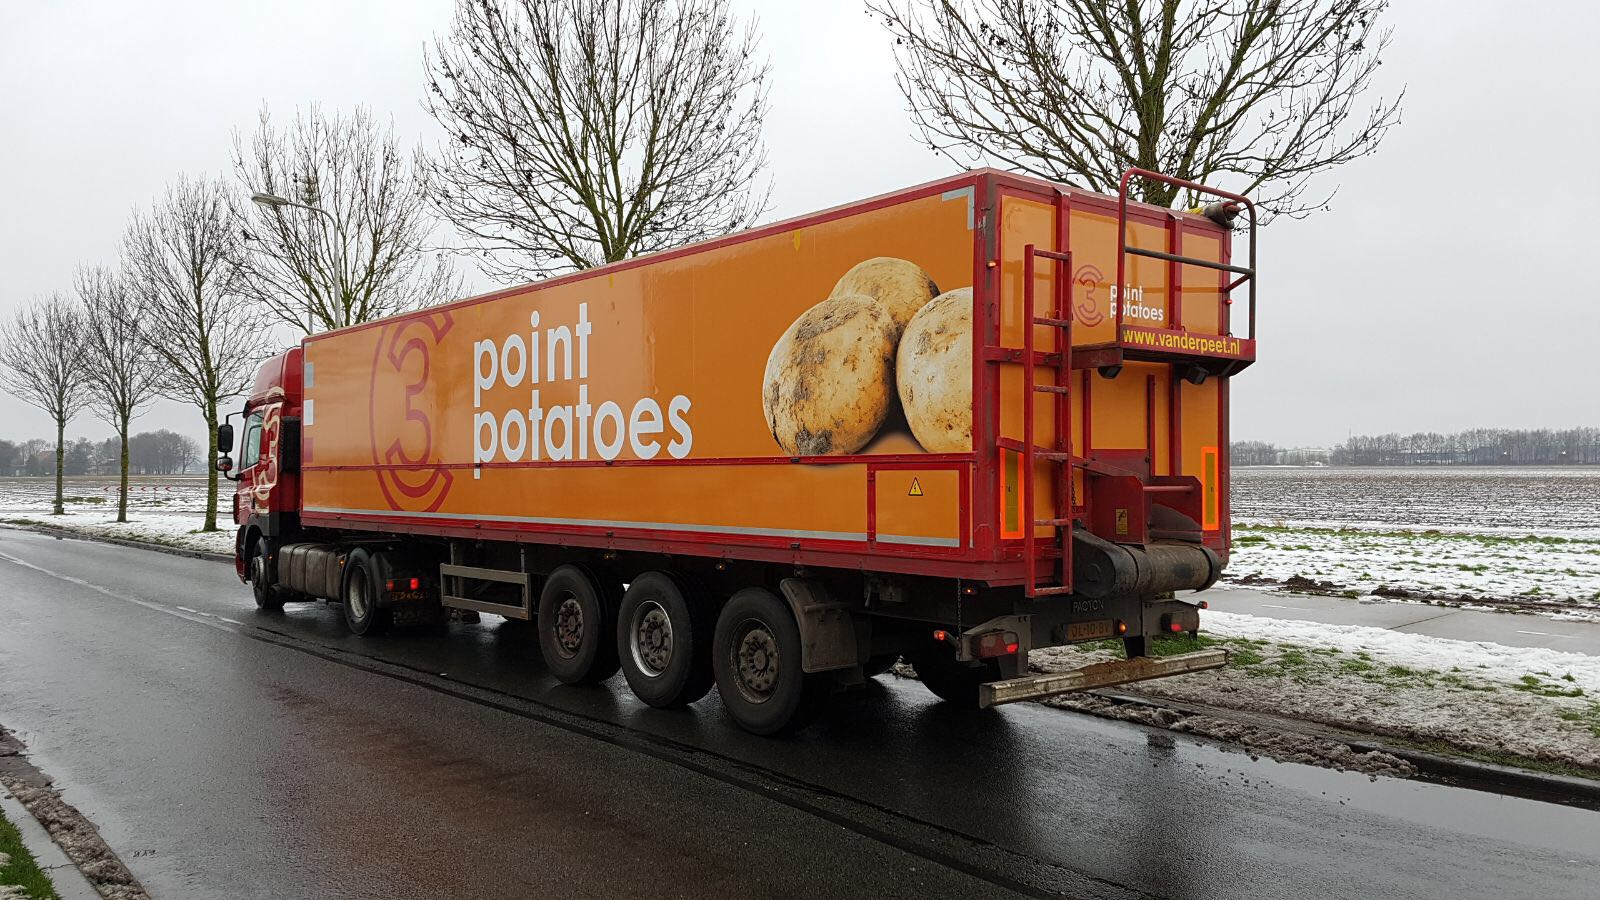 Transport Import en Export Aardappelen Limburg 3 Point Potatoes